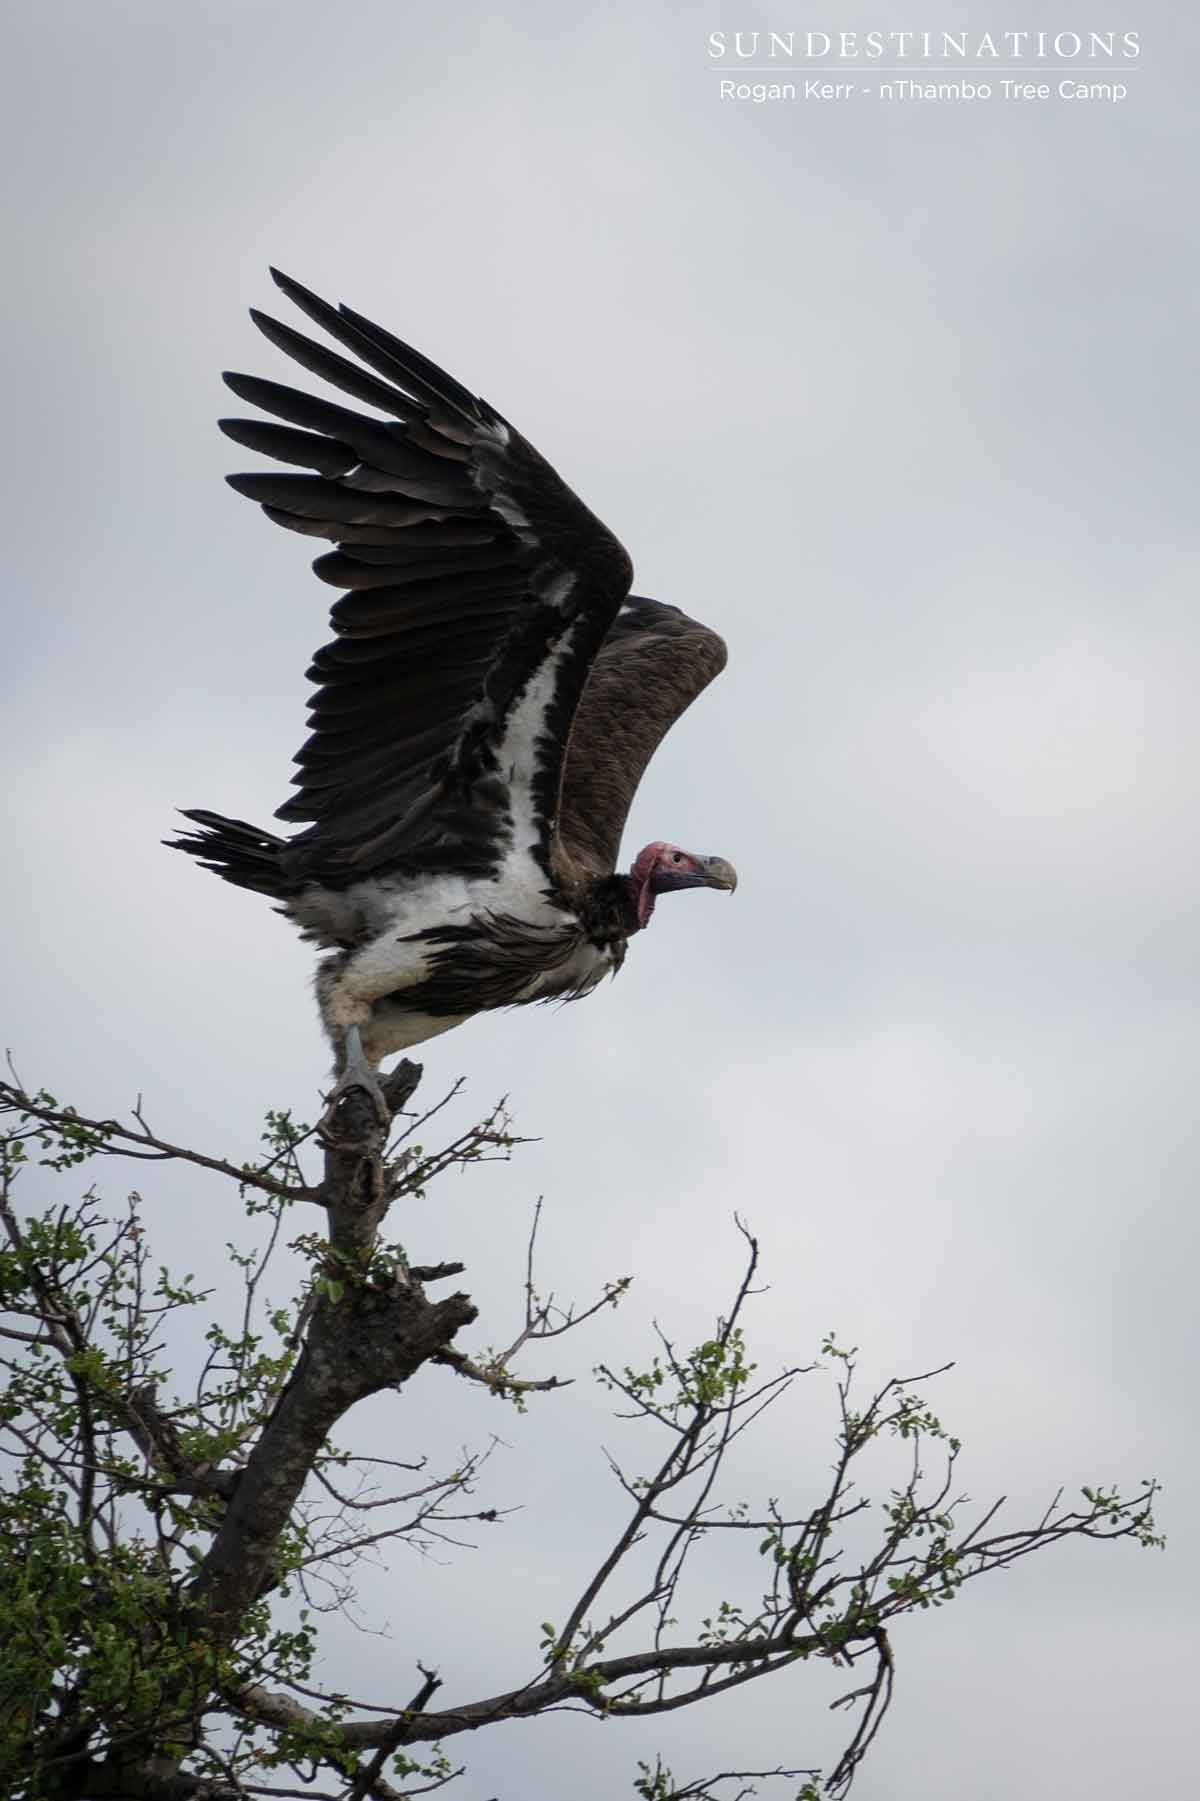 Hooded Vulture at nThambo